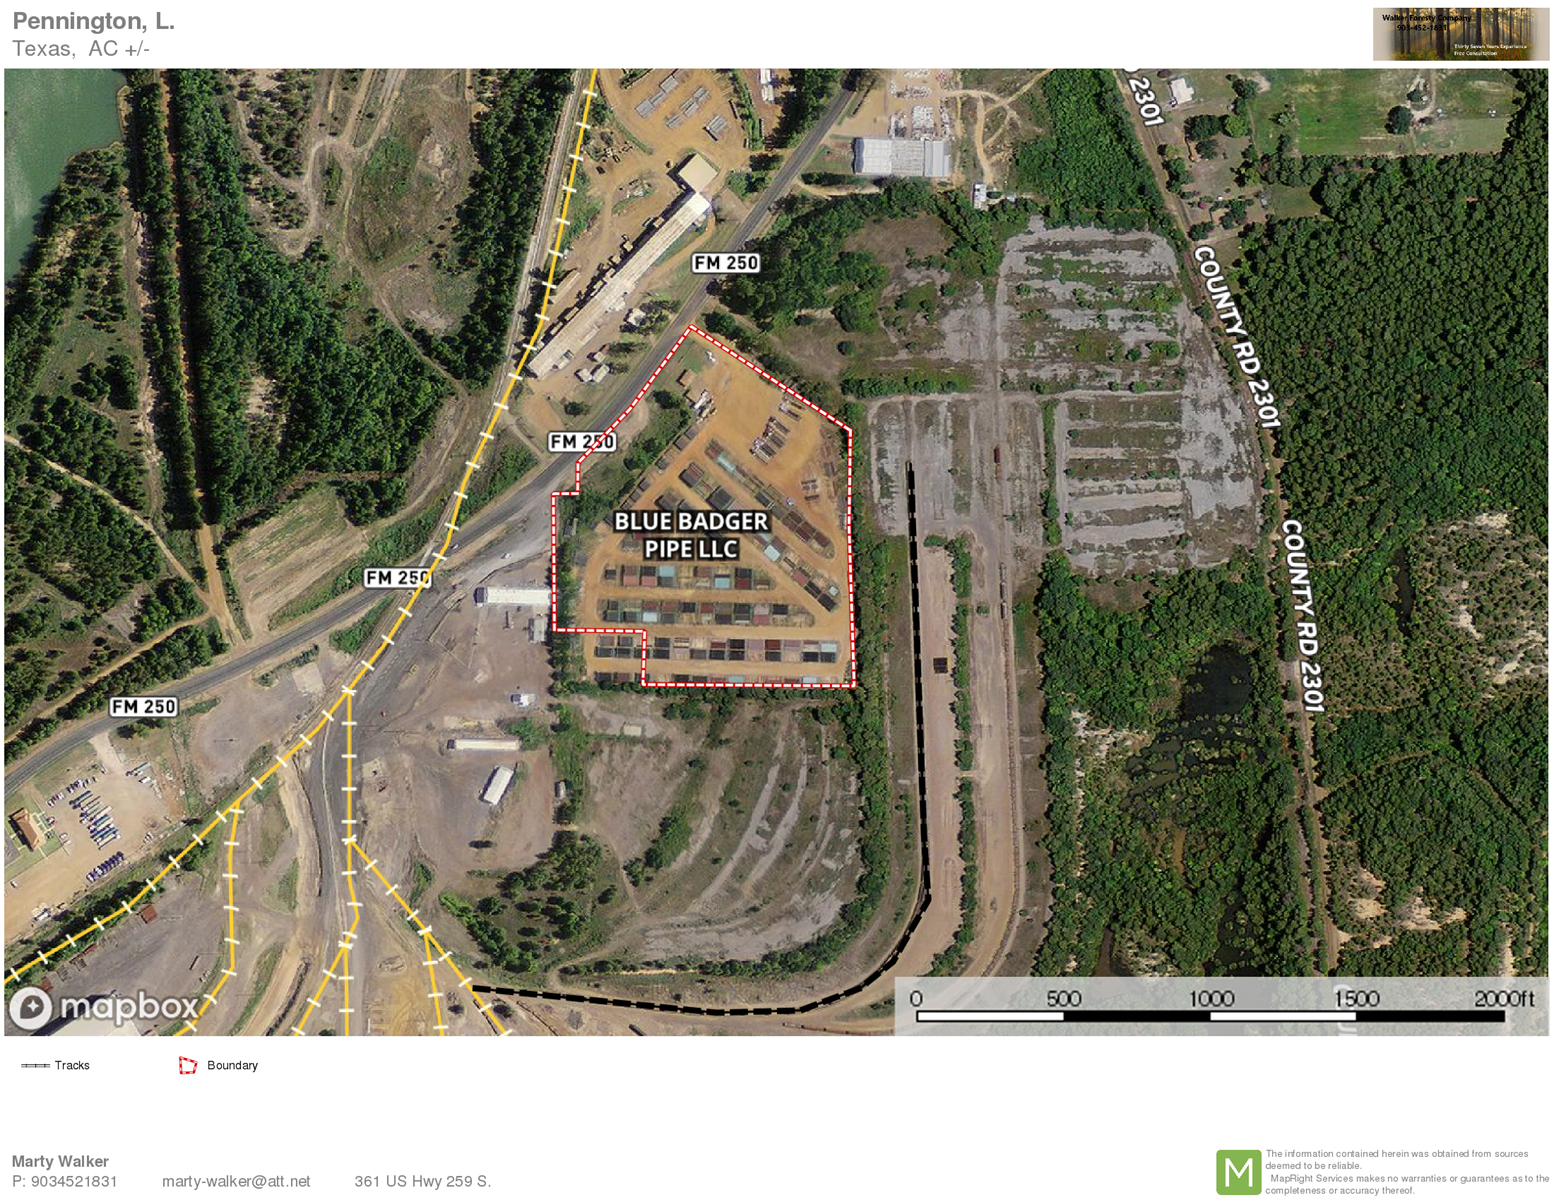 Commercial Pipe or Storage Yard for Sale in Lone Star Texas